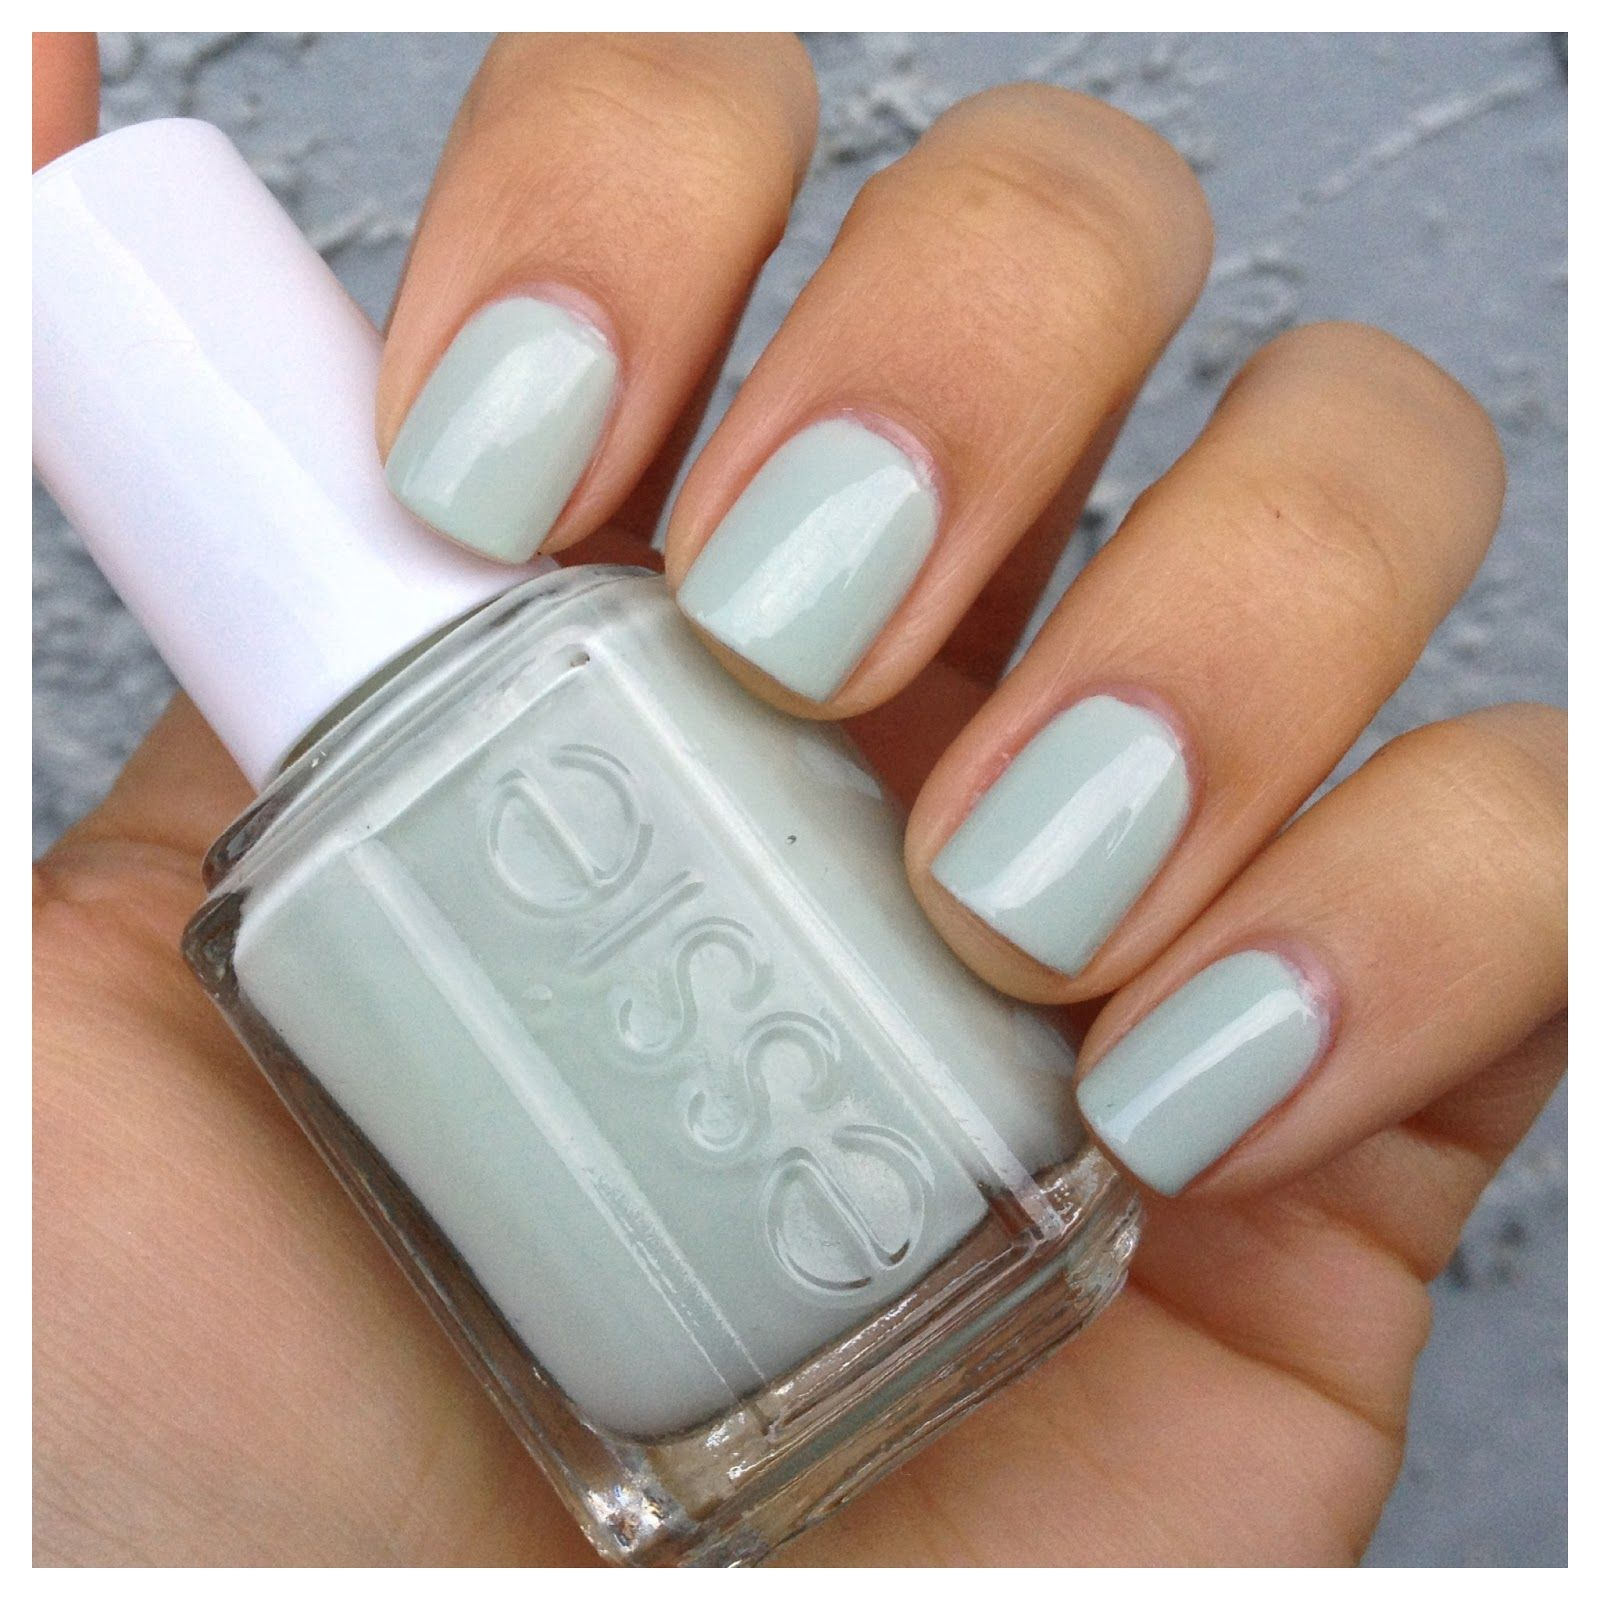 Essie - Absolutely Shore | warmfrenchonionsoup.blogspot.com